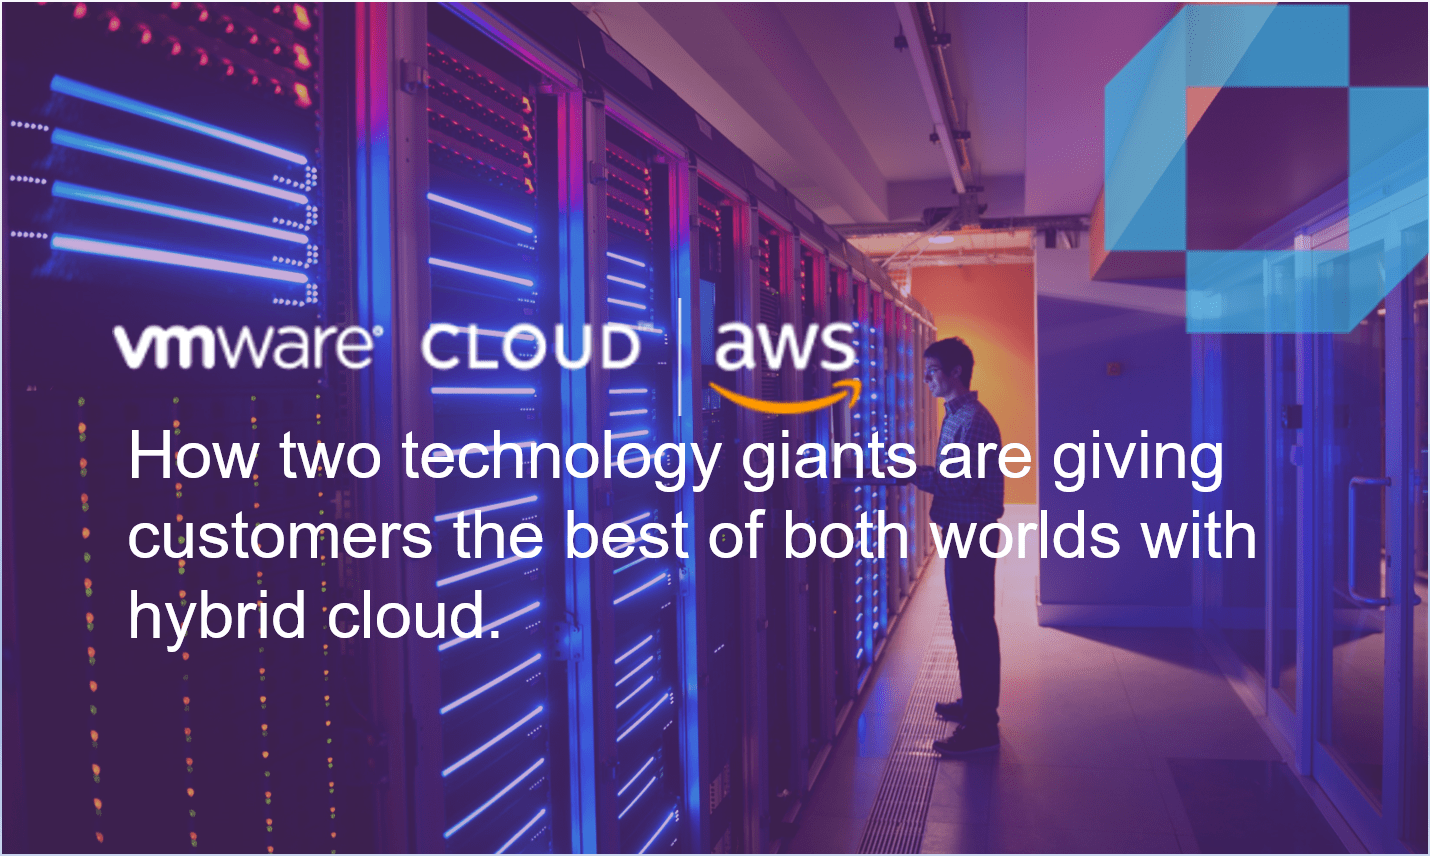 About VMware Cloud on AWS